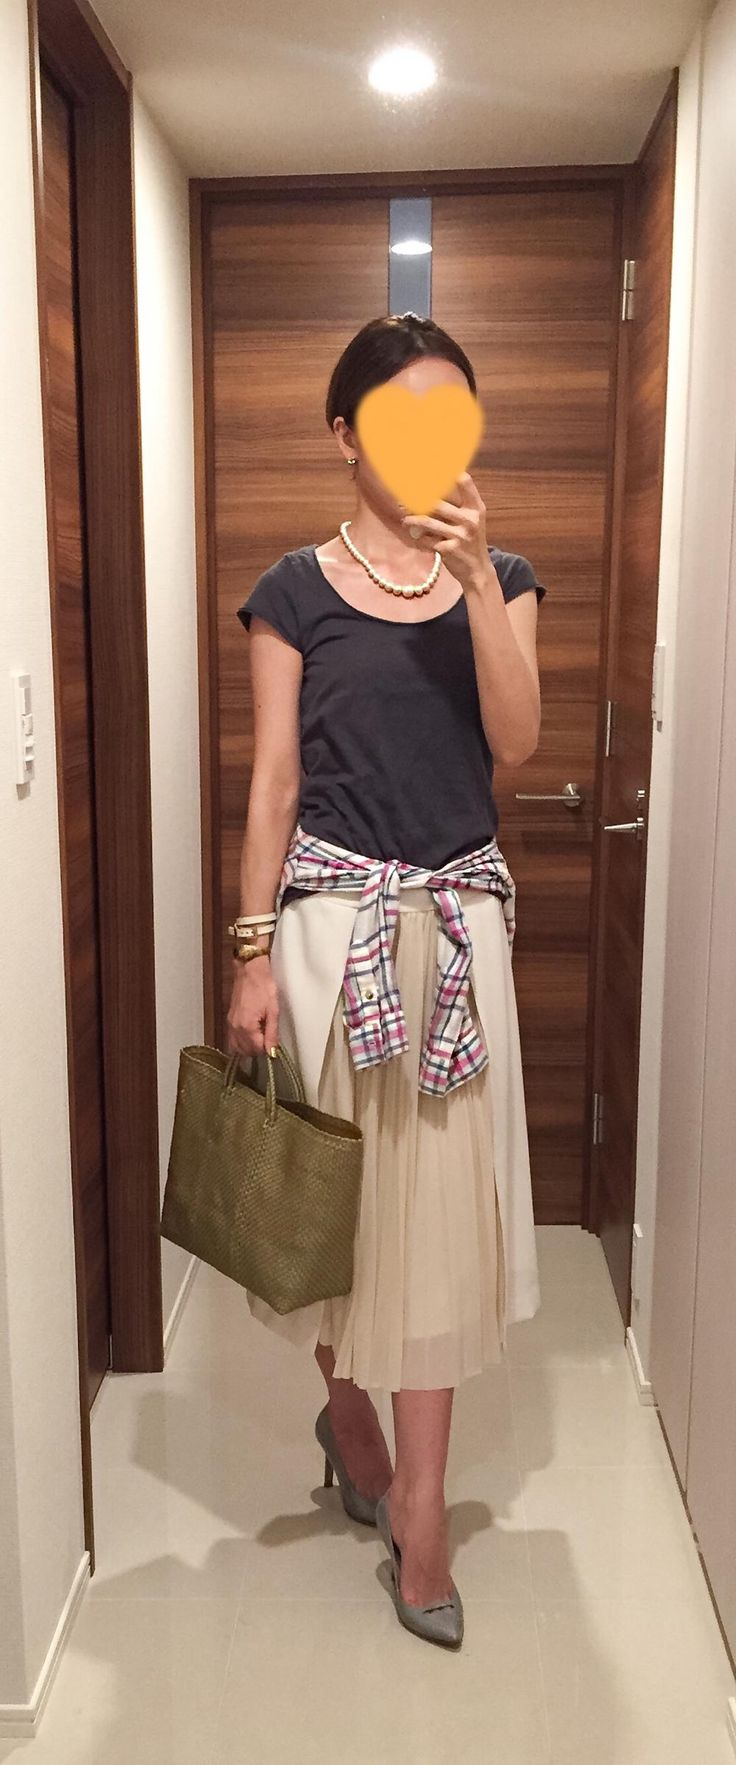 Grey tee: SISLEY, Plaid shirt: Lovers + Friends, White long skirt: Des Pres, Gold bag: la kagu, Grey pumps: PELLICO